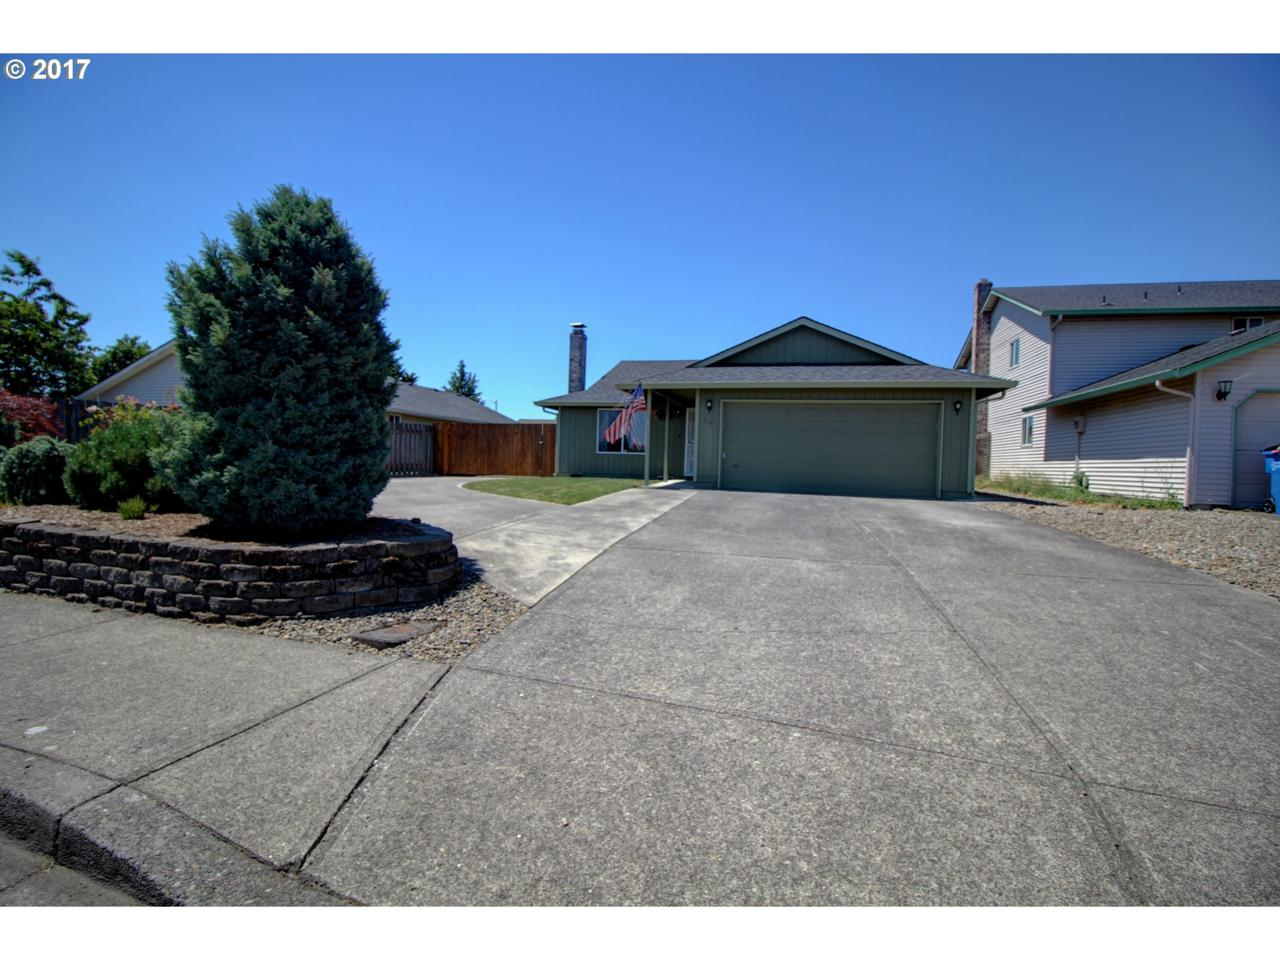 416 NE 162ND Ave, Vancouver, WA 98684 (MLS #17073446) :: The Dale Chumbley Group